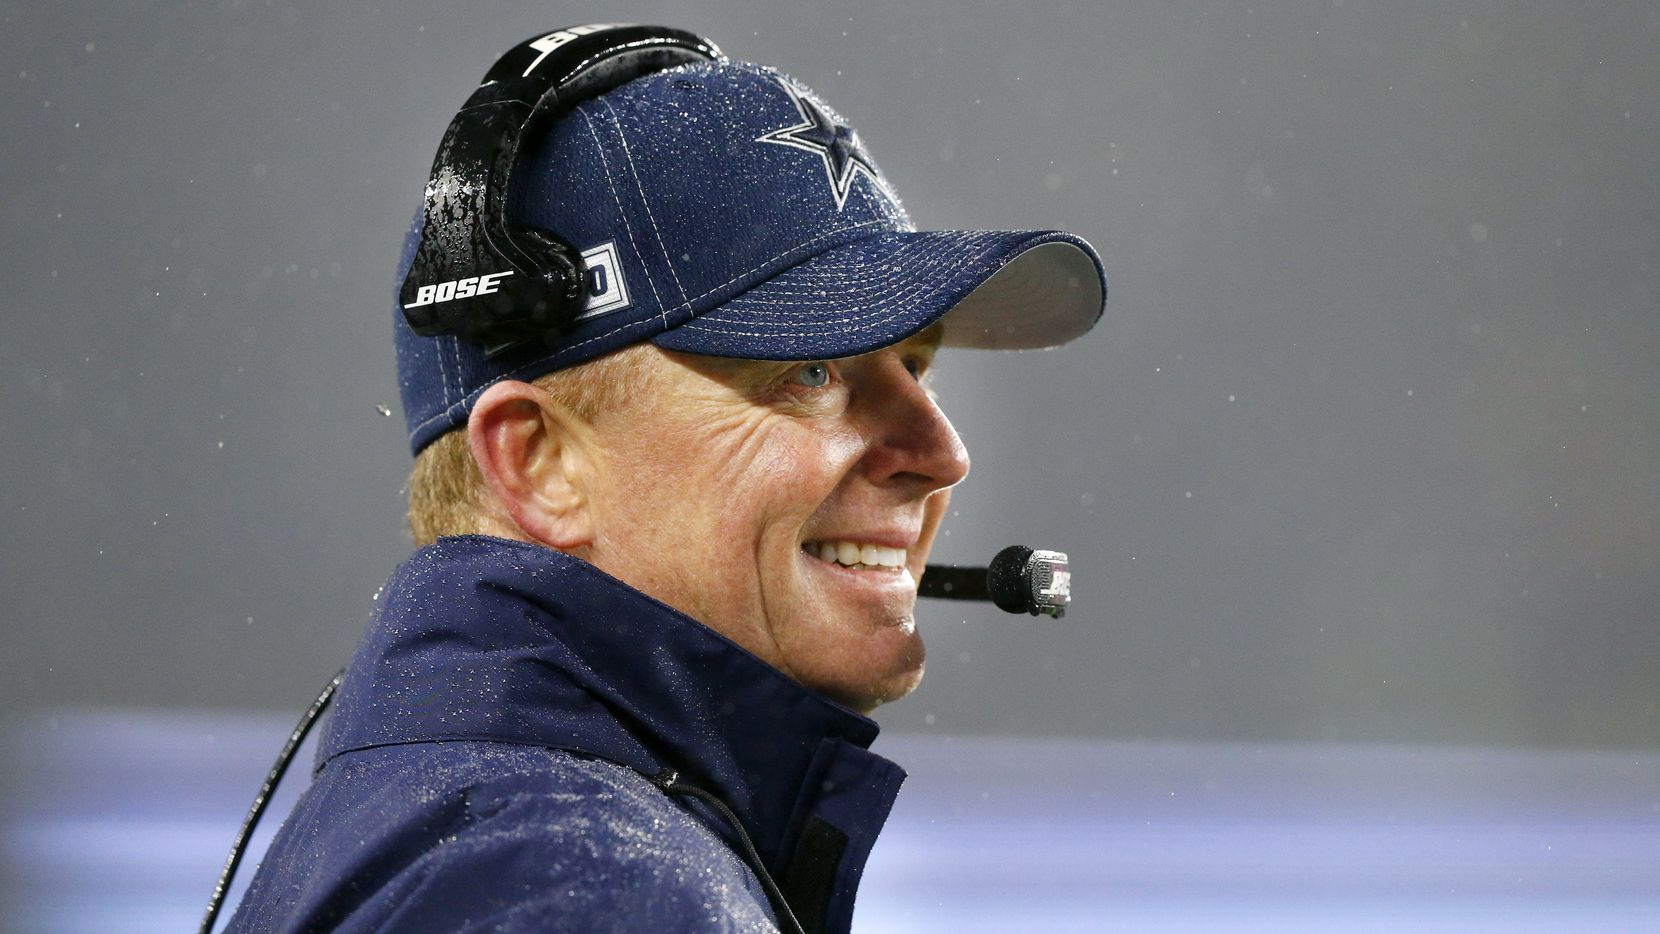 Dallas Cowboys head coach Jason Garrett watches his offense in a gusty rain at Gillette Stadium in Foxborough, Massachusetts Sunday, November 24, 2019. The Cowboys are icing the New England Patriots.